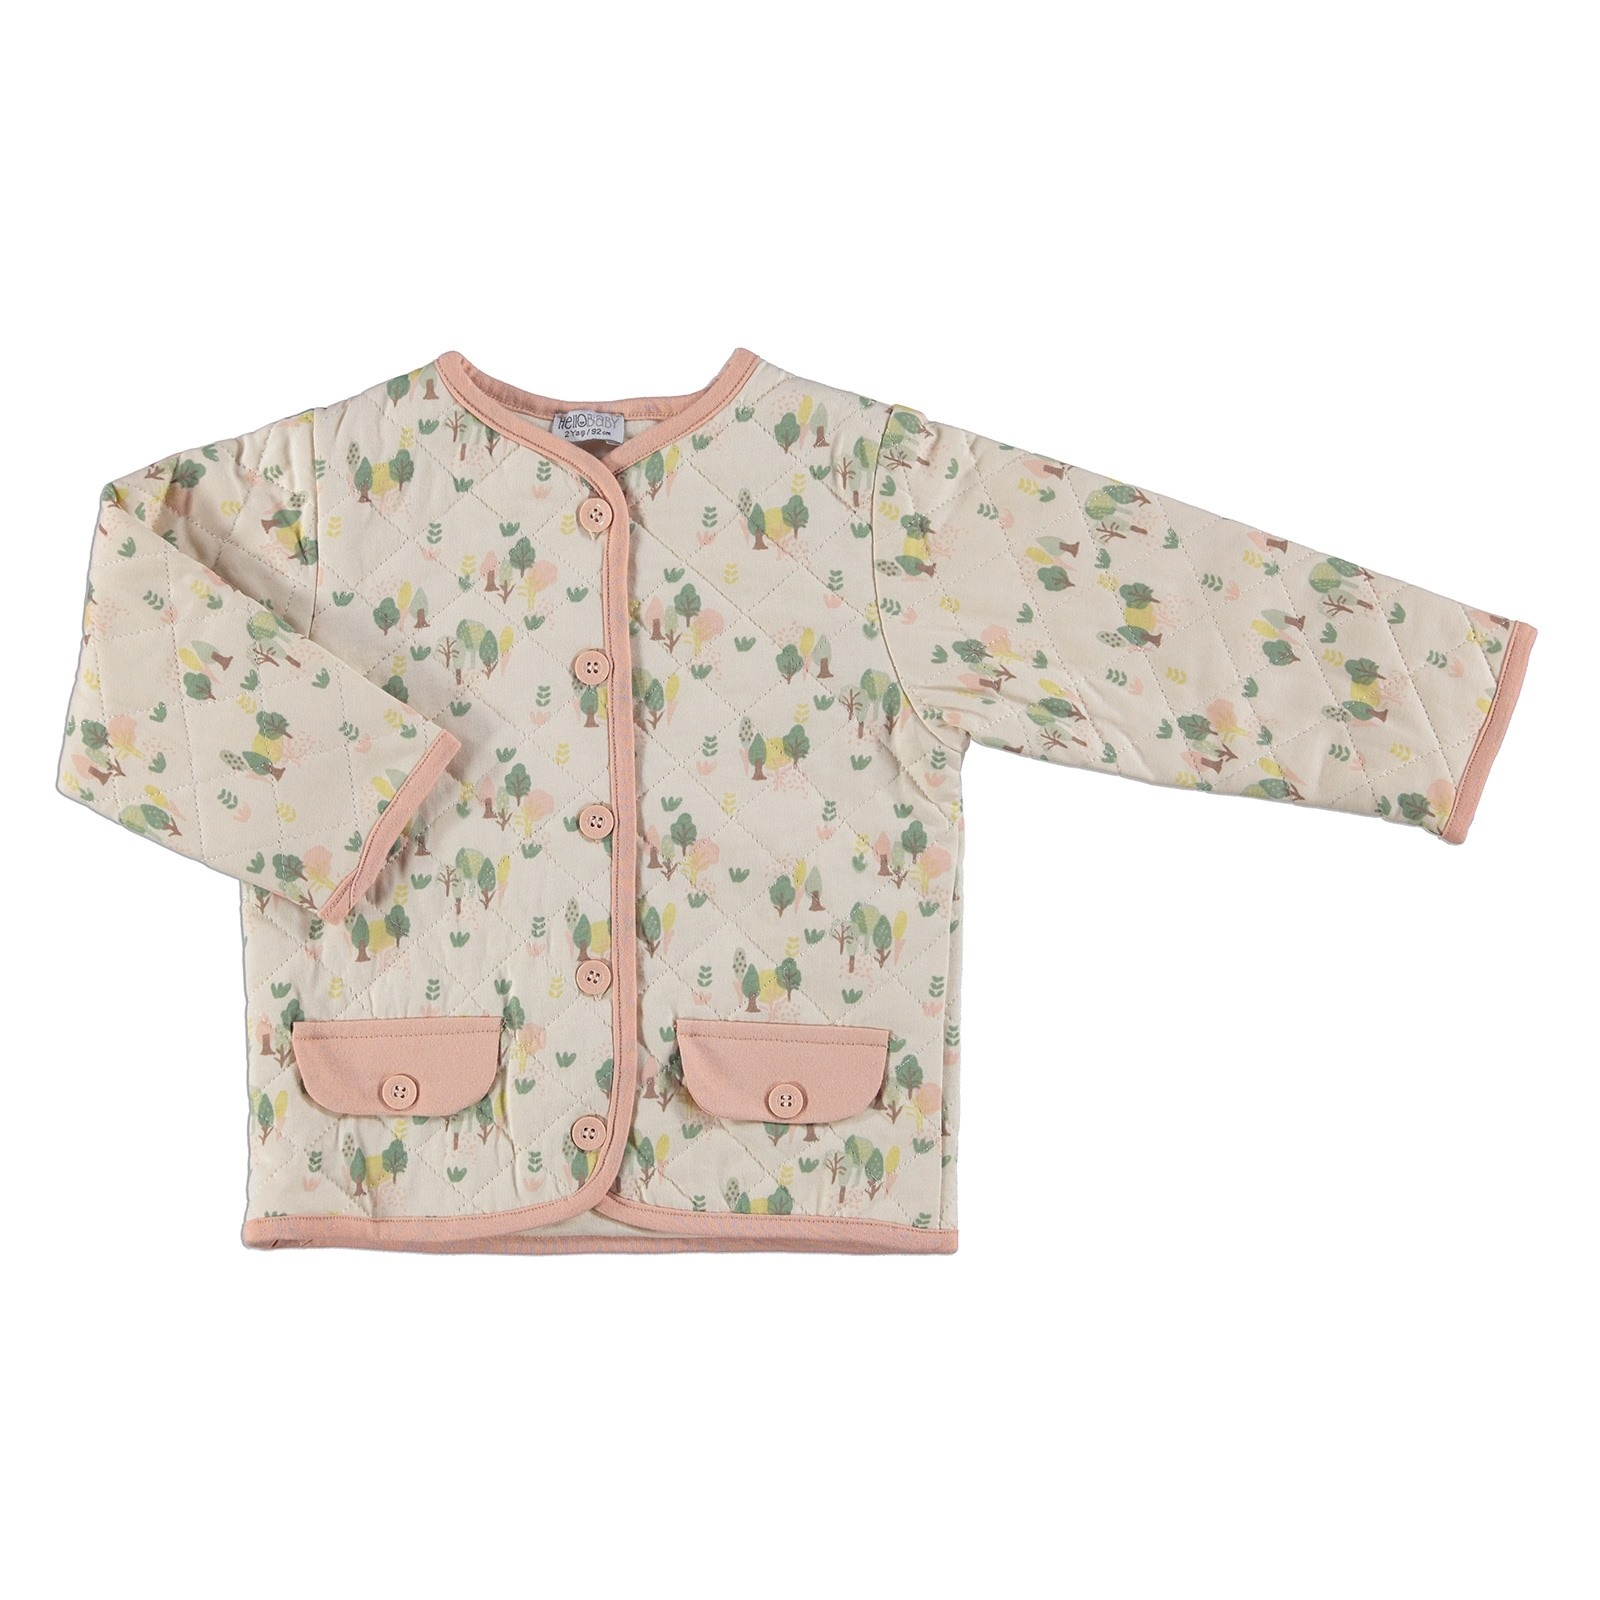 Ebebek HelloBaby Winter Soft Forest Theme Baby Jacket